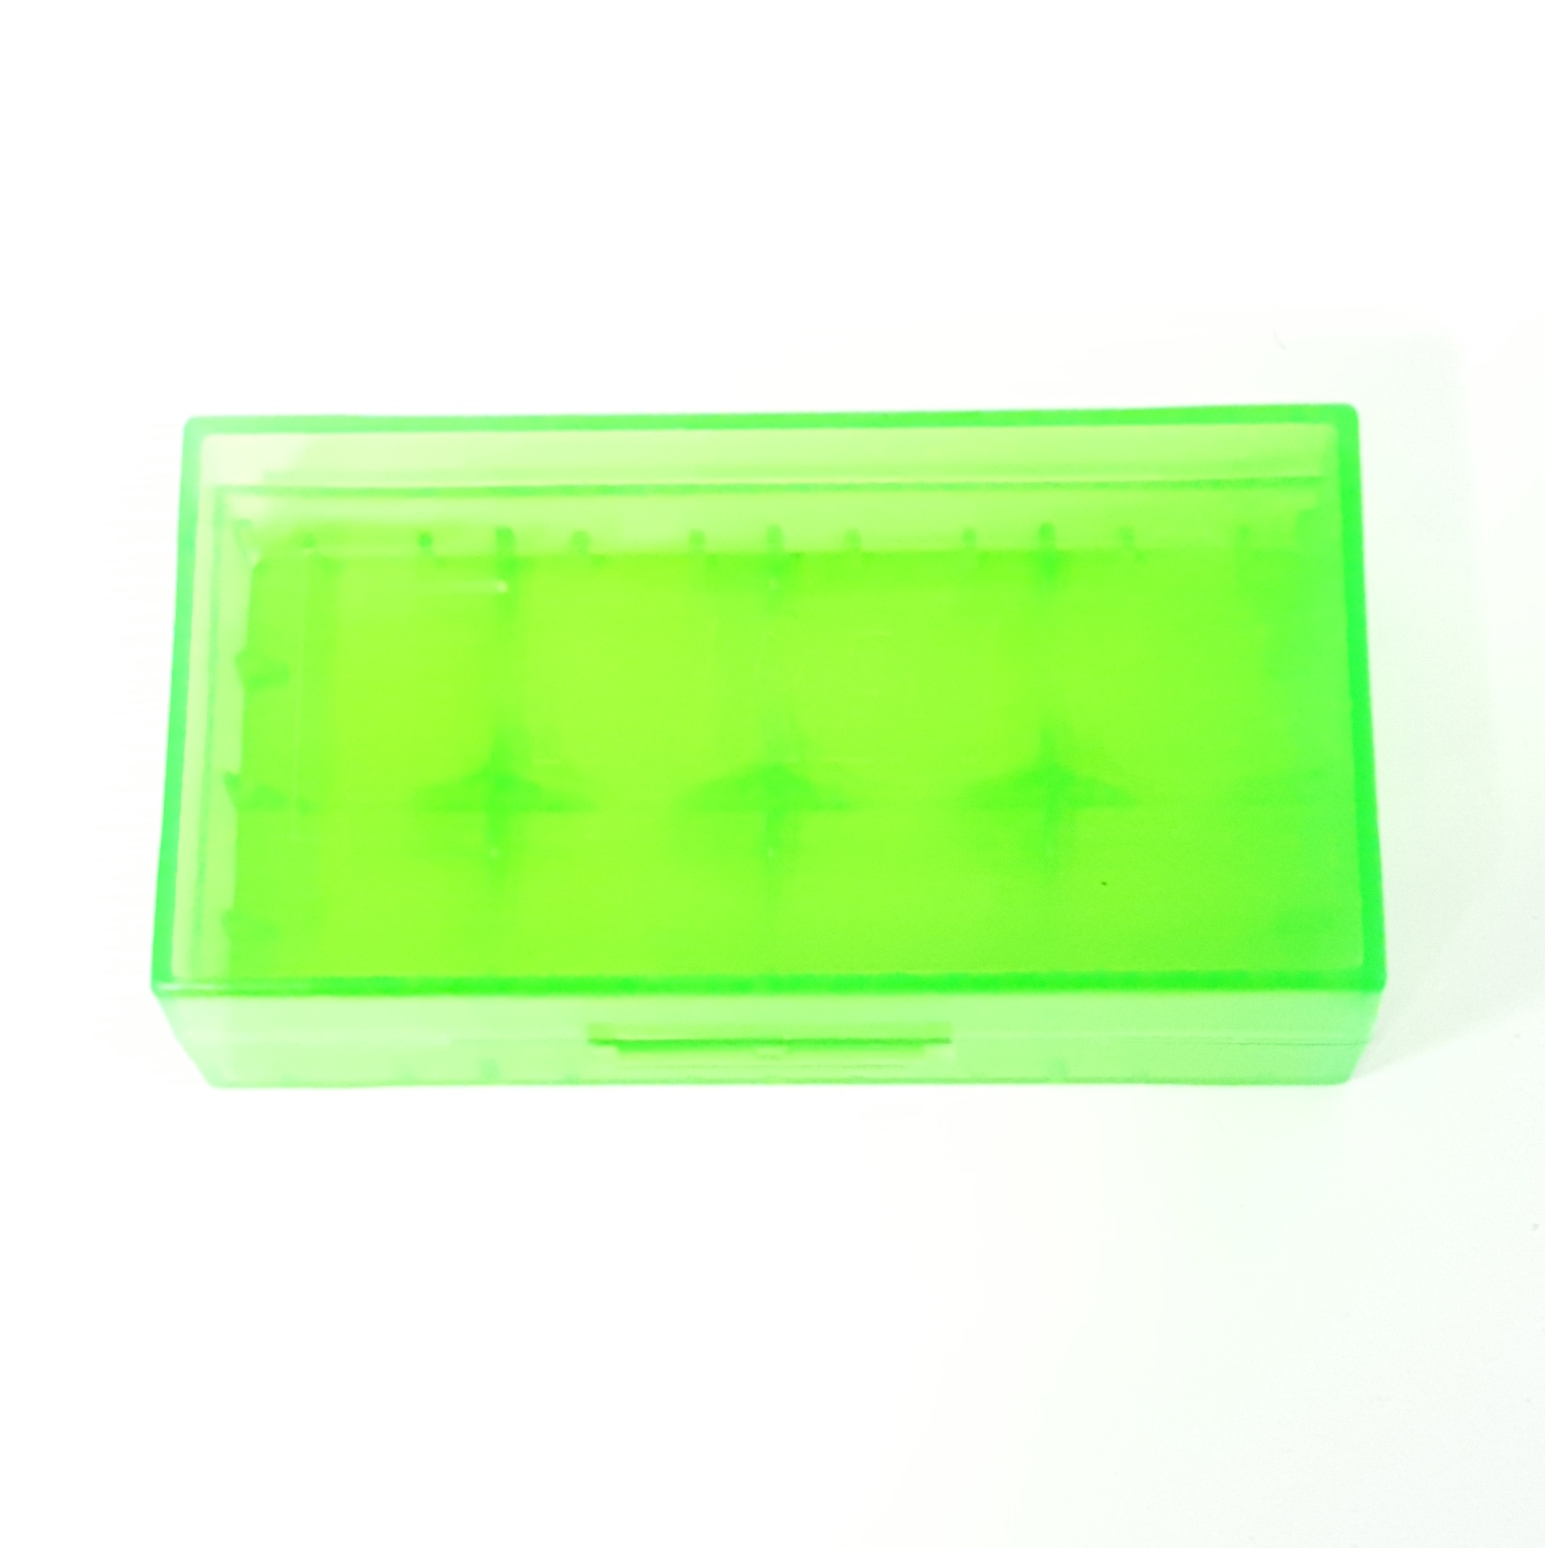 Battery Case 2x18650 Translucent Green Plastic